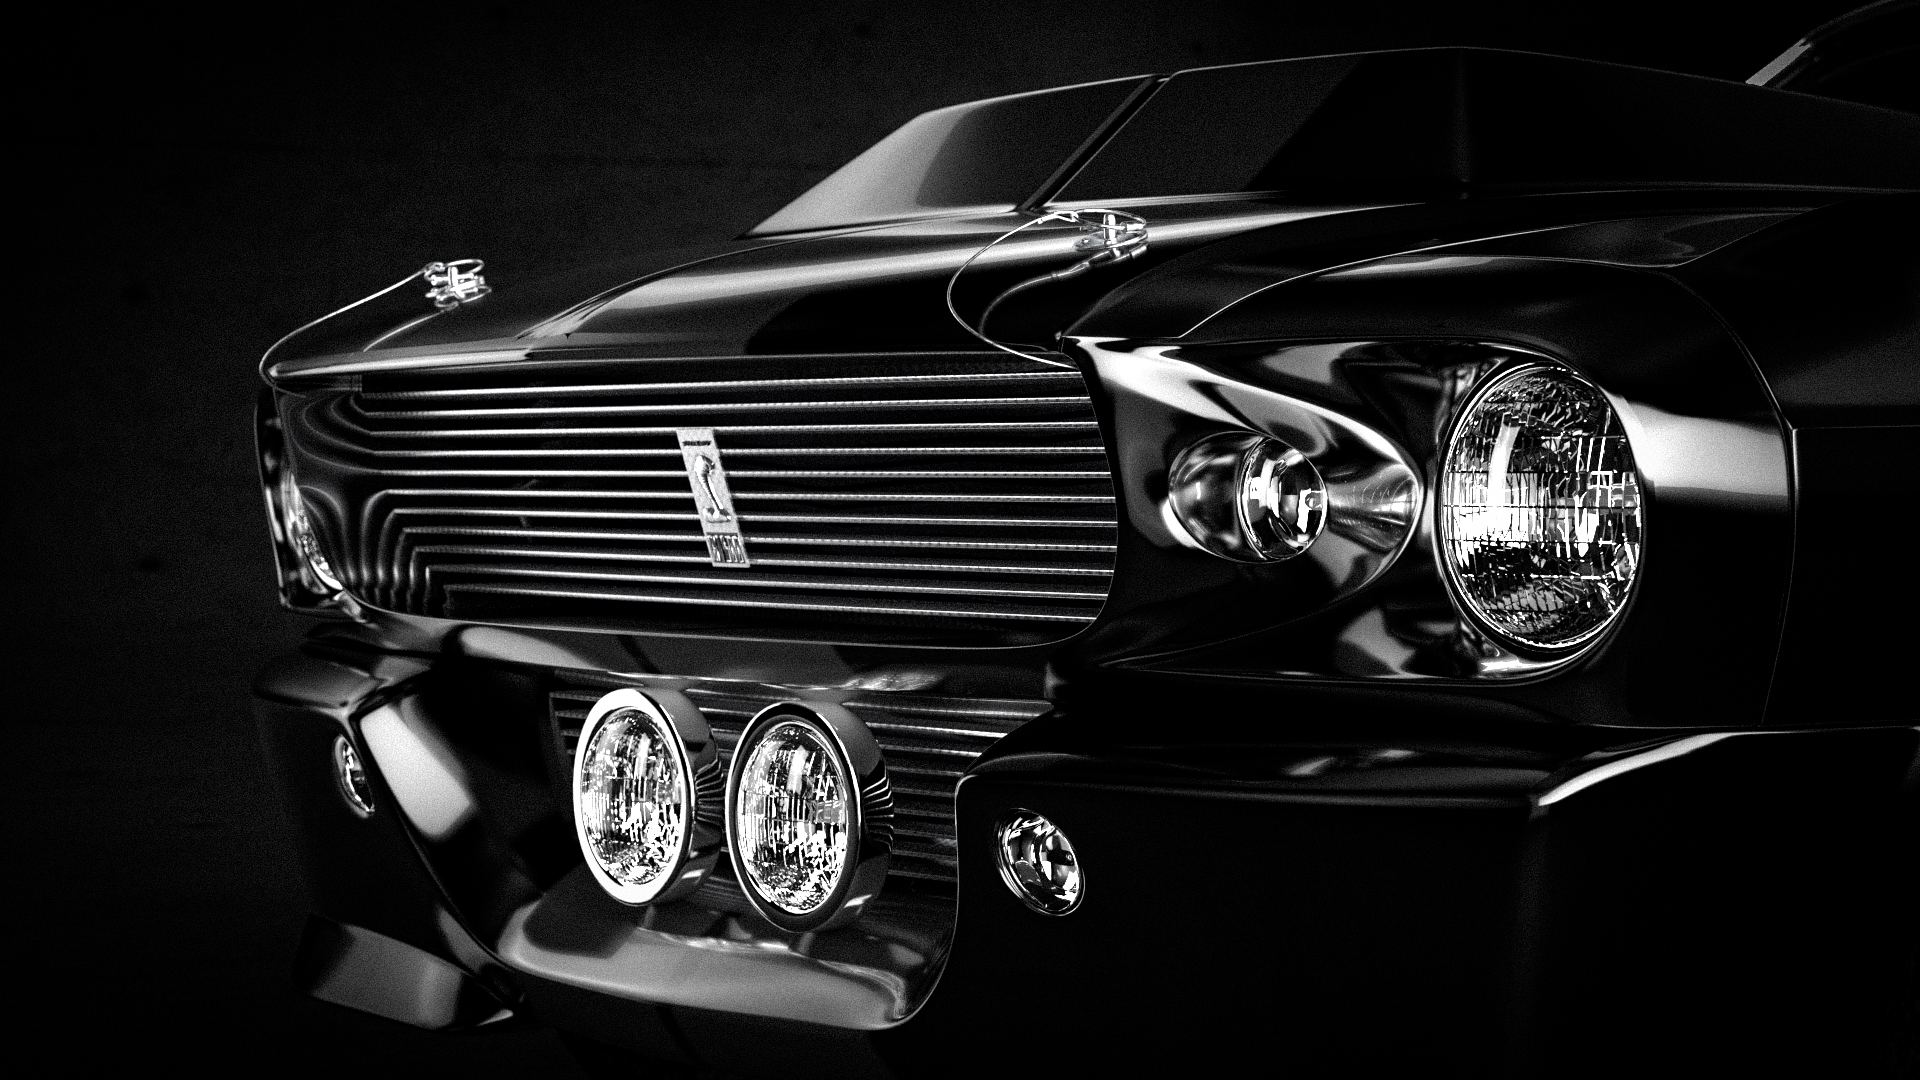 Shelby_Eleanor_blackandWhite_photography (2 of 3).jpg